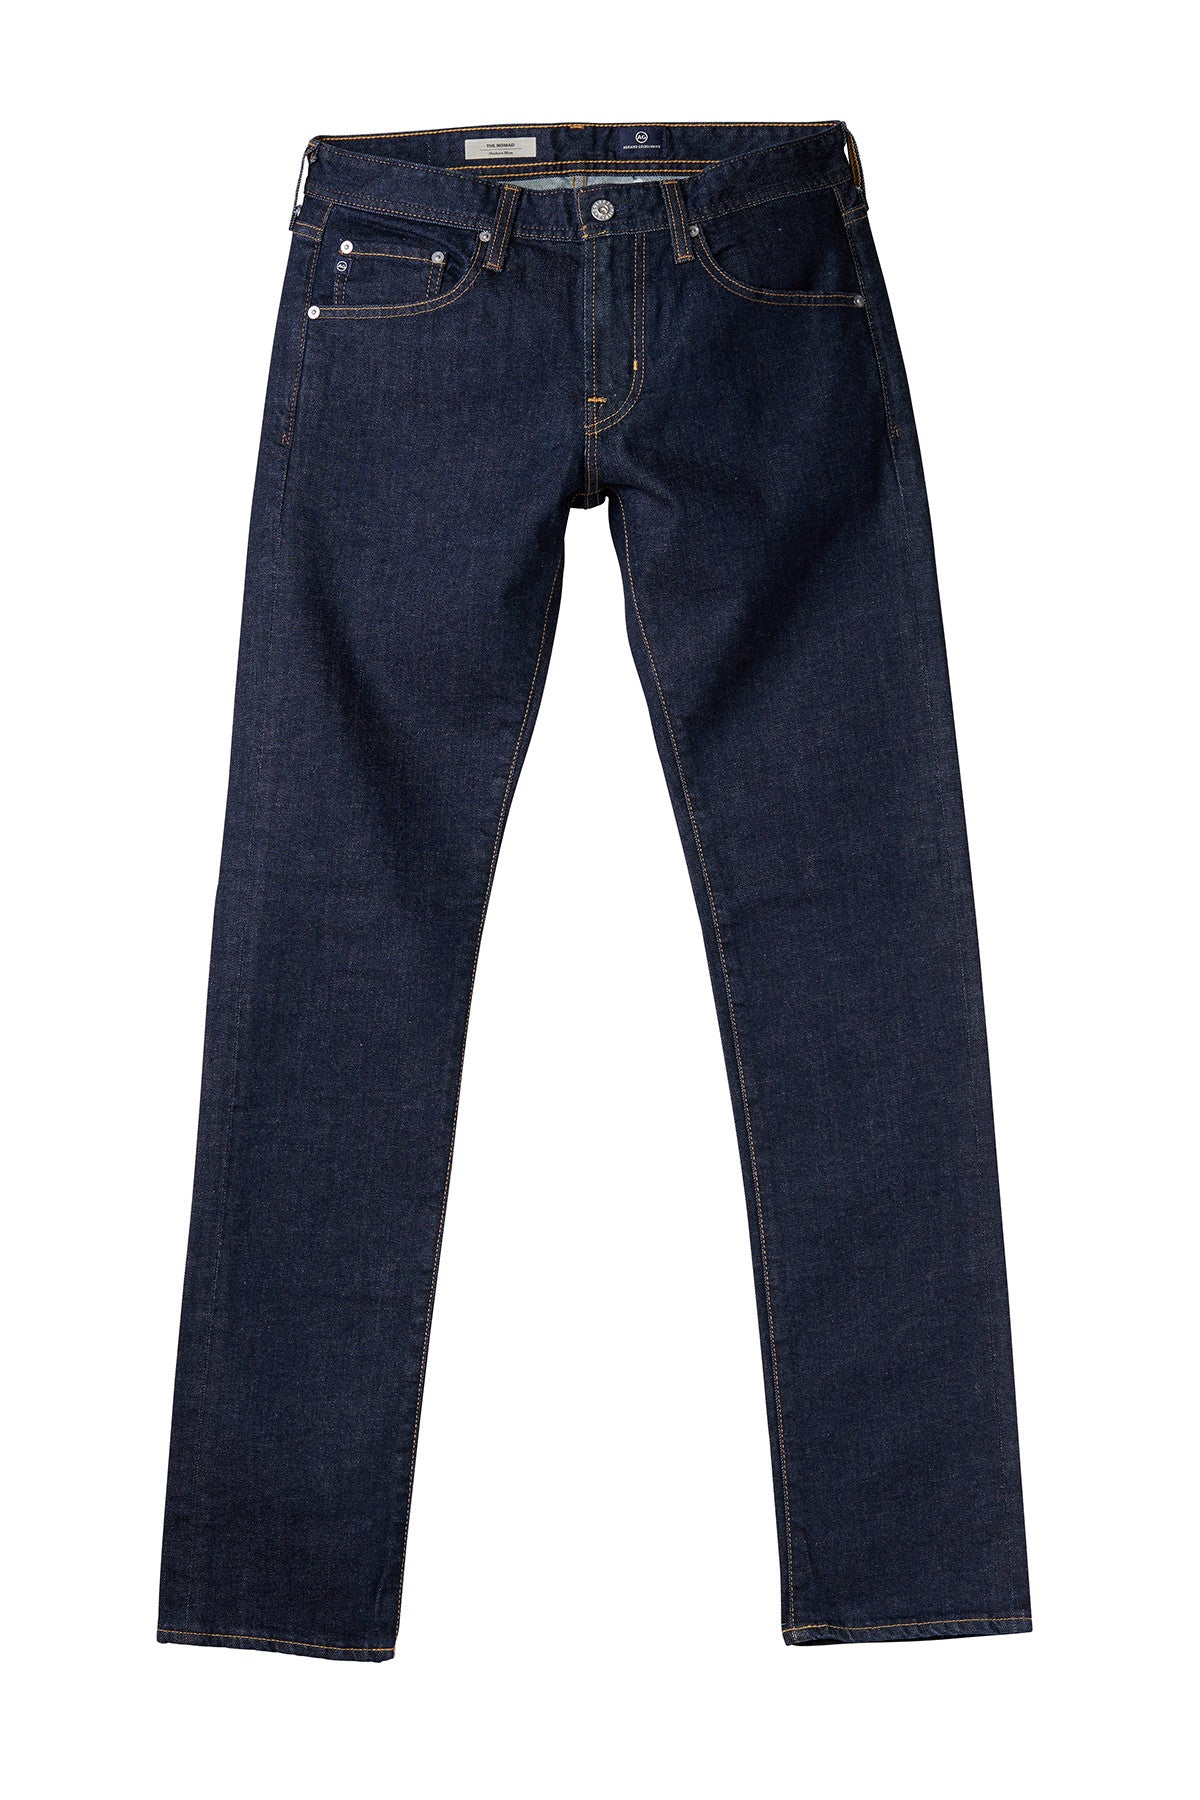 AG 'Nomad' Skinny Fit Jeans in Clean Indigo (Repose)